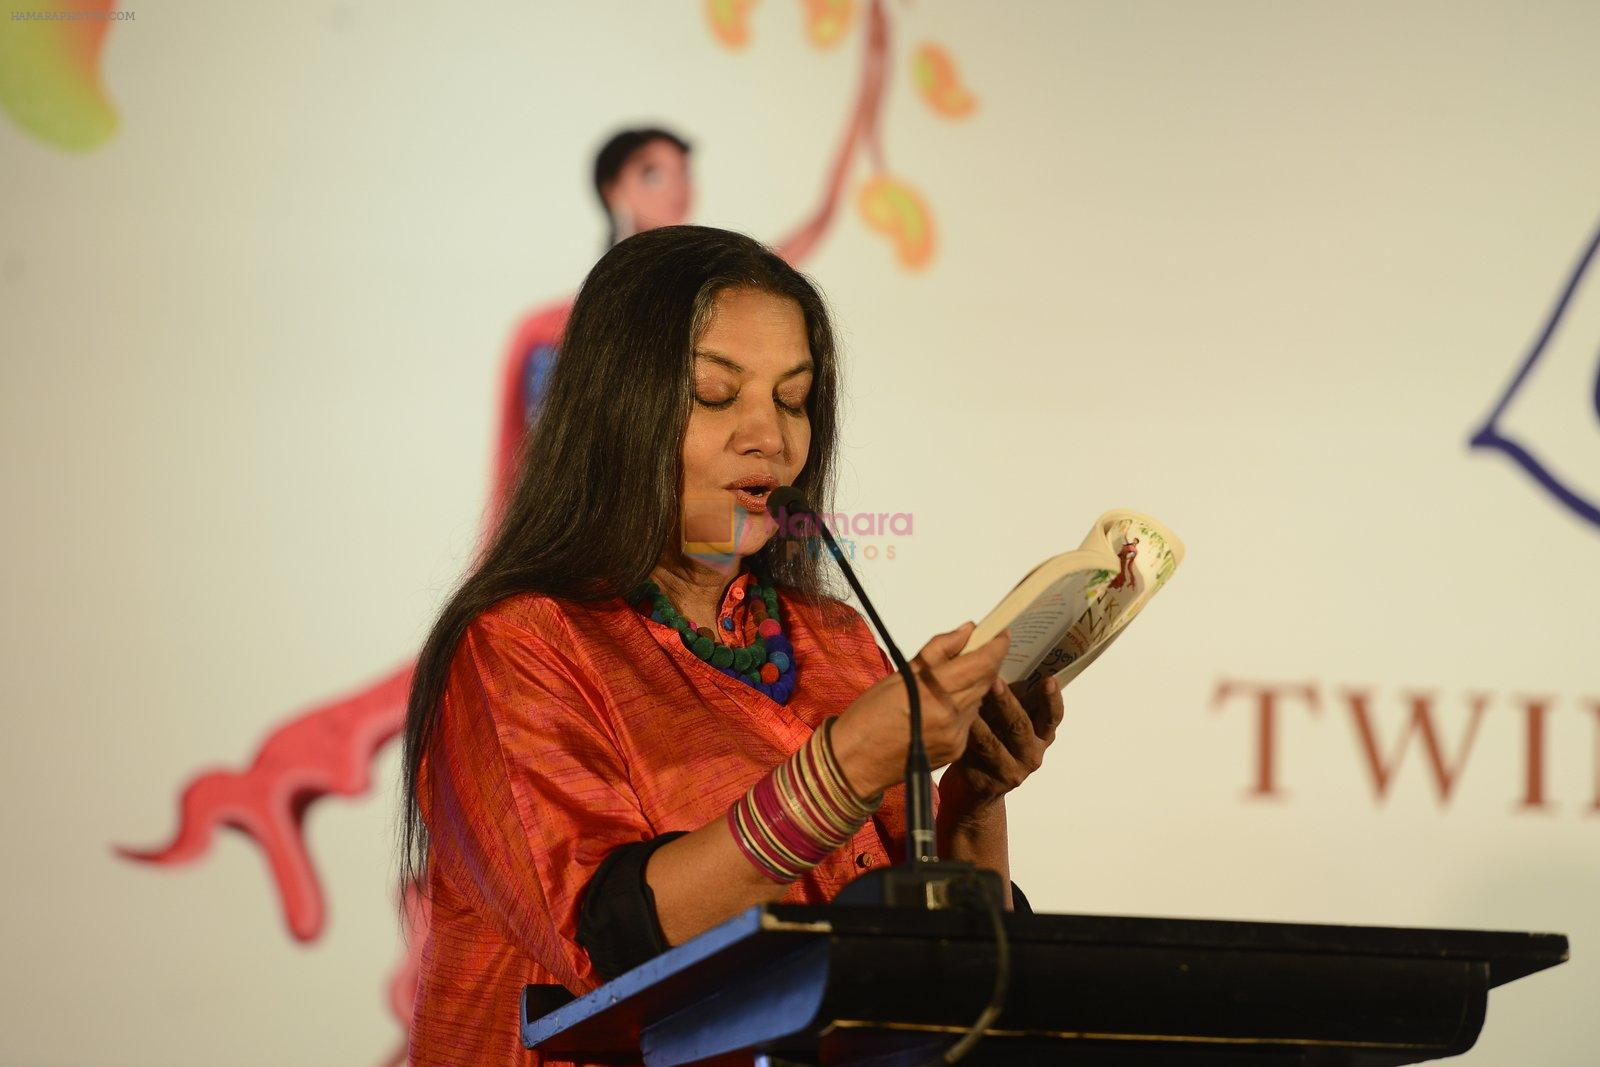 Shabana Azmi at Twinkle Khanna's book launch in J W Marriott, Mumbai on 15th Nov 2016